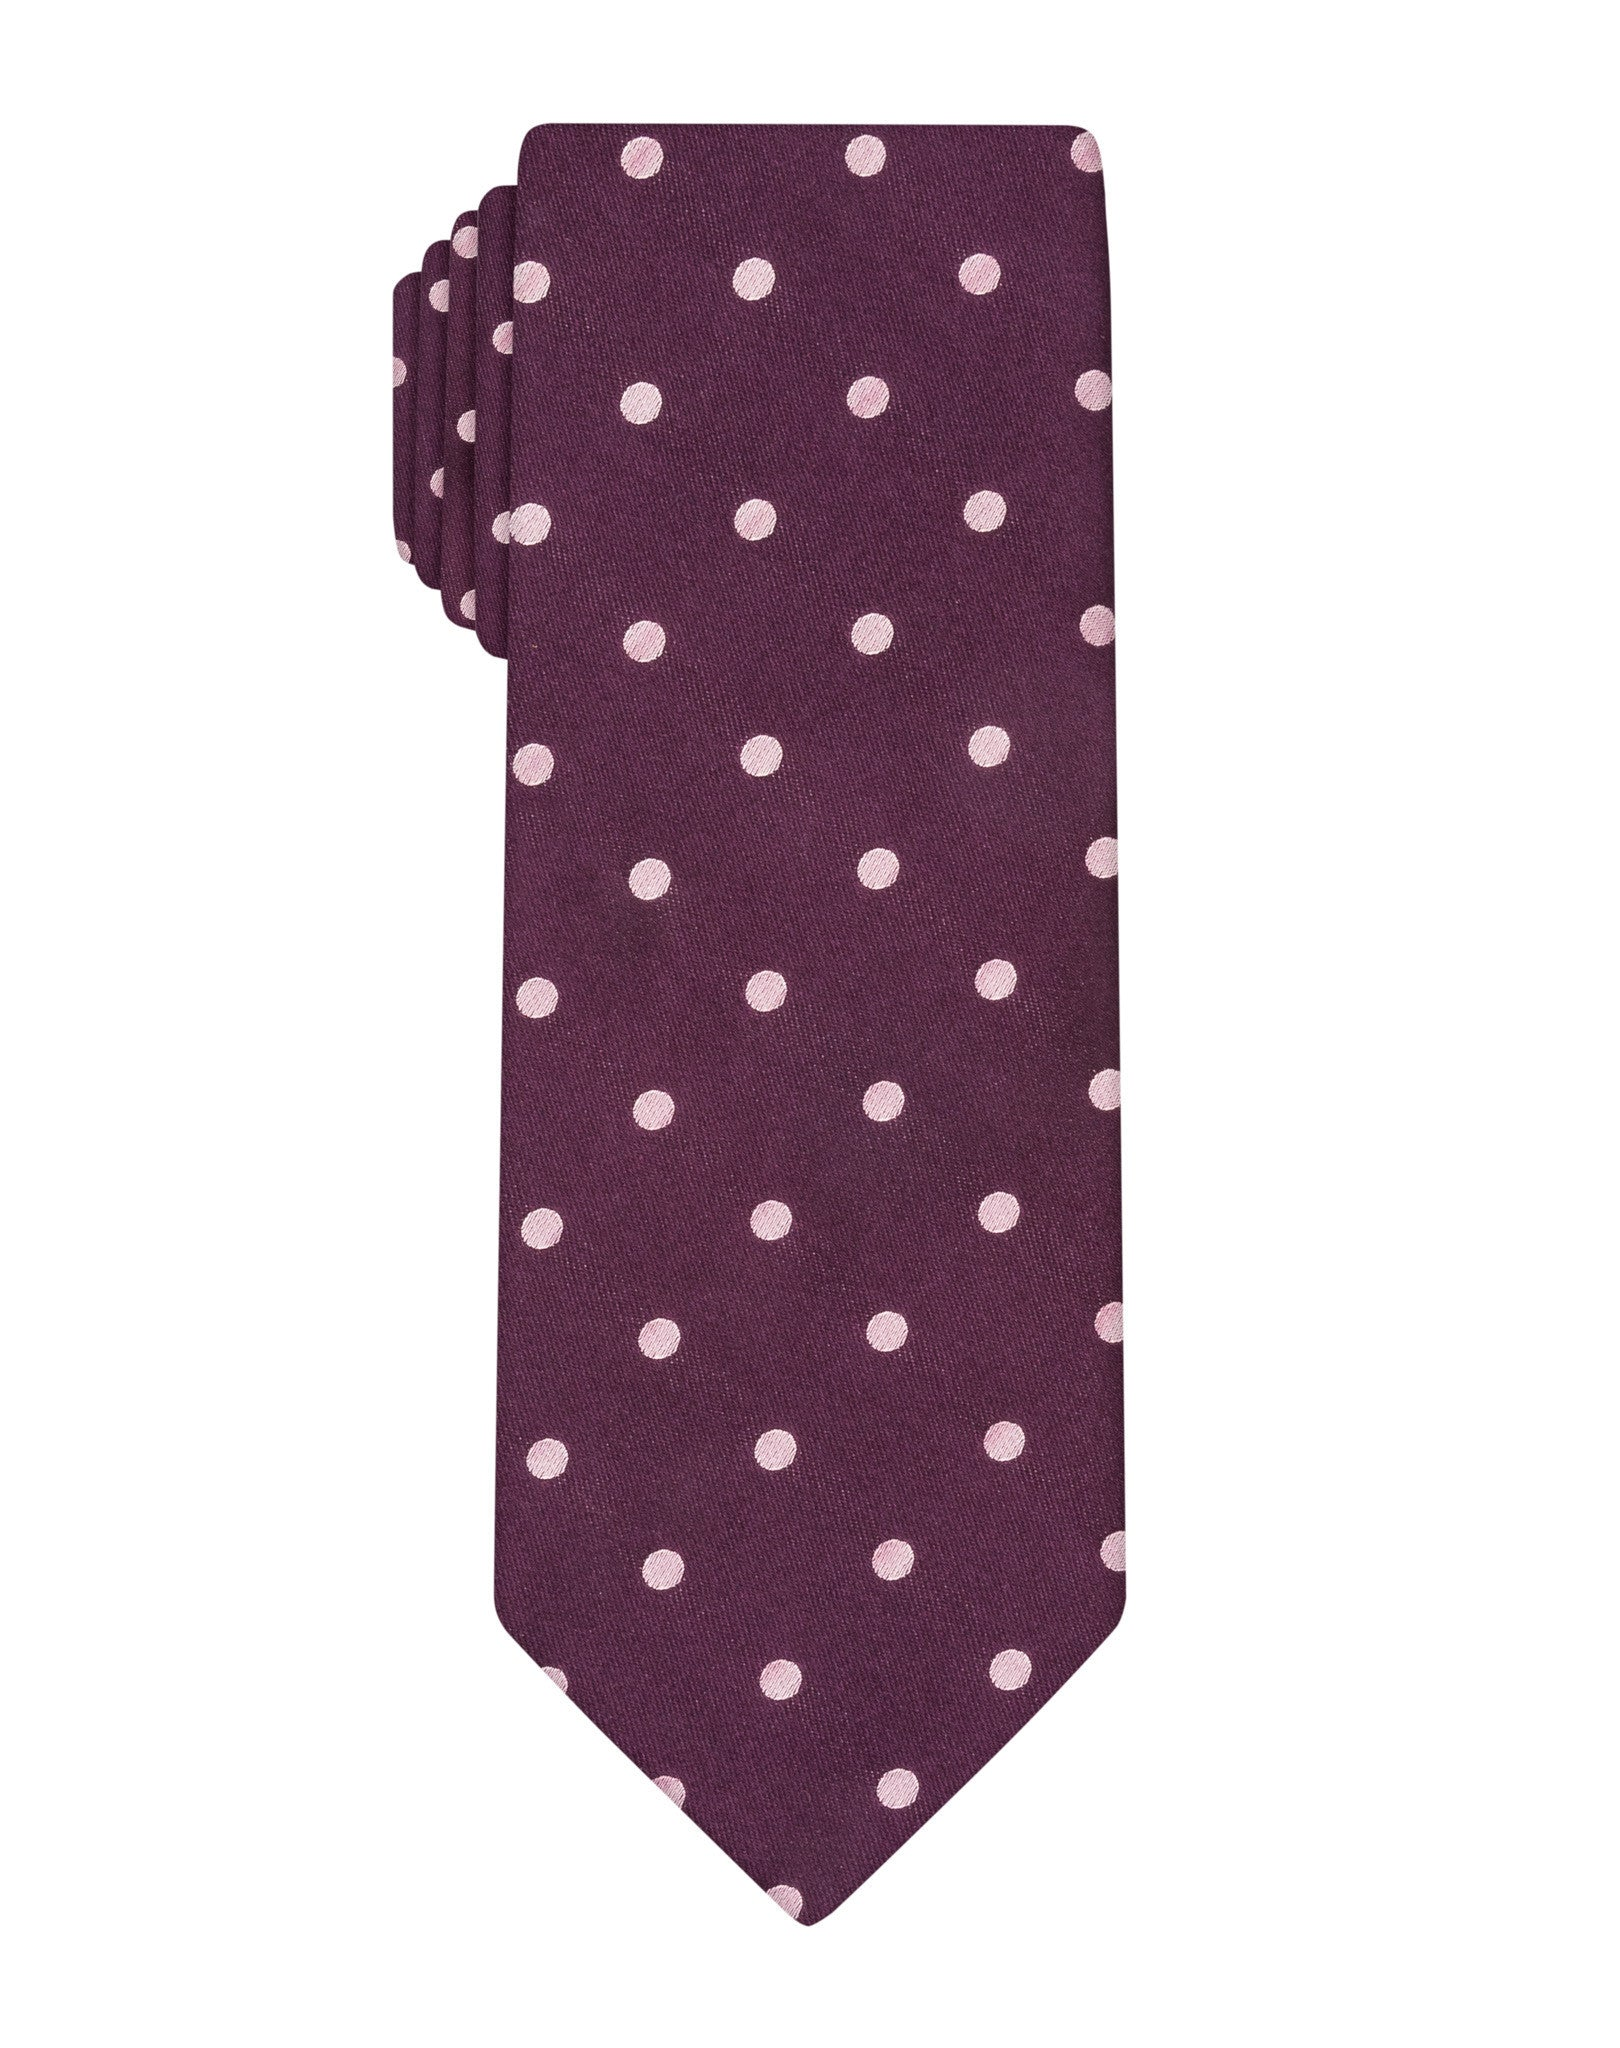 Purple Satin Polka Dot Tie